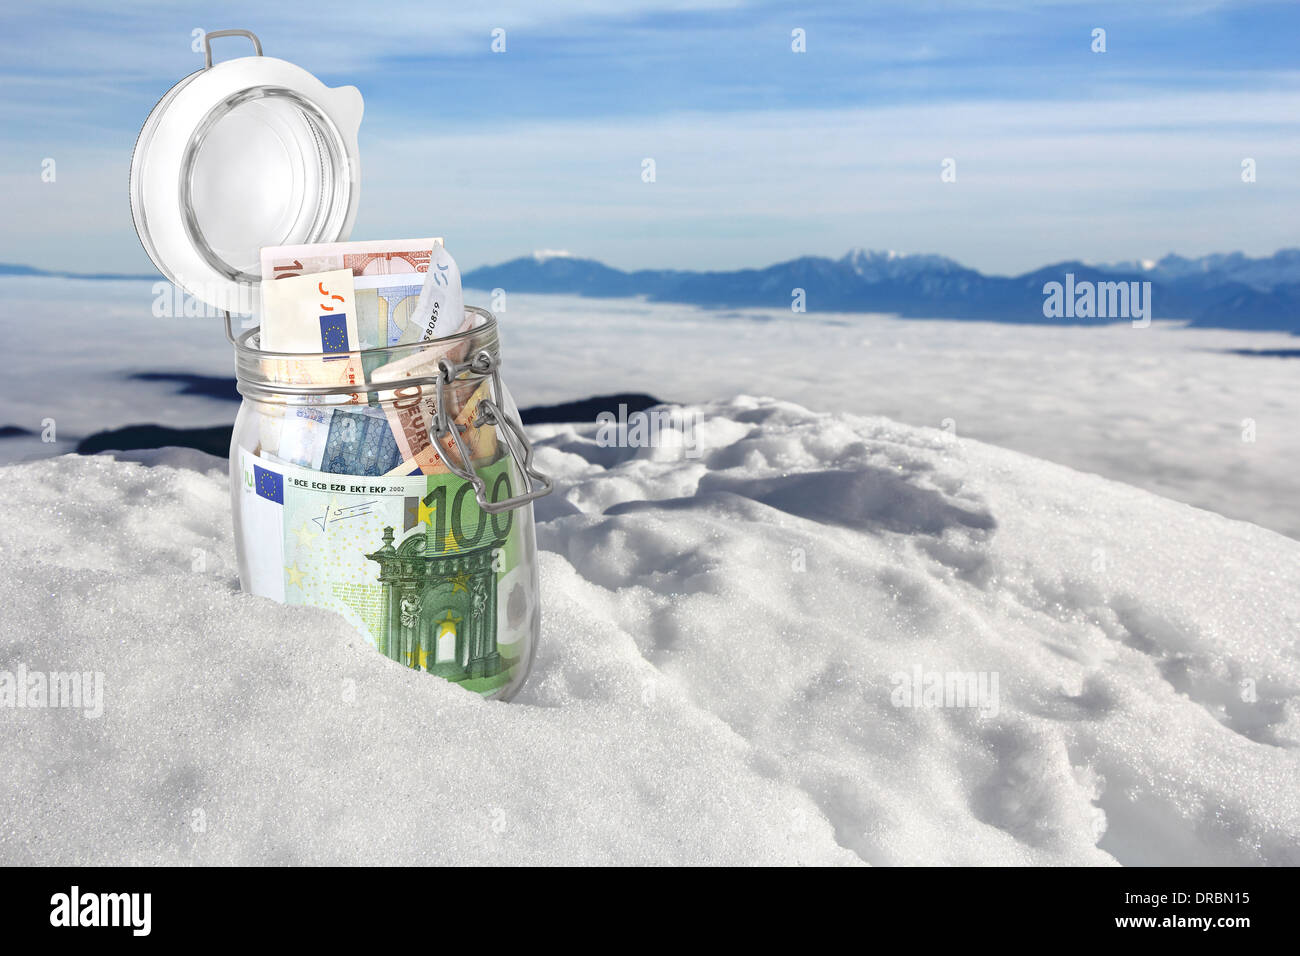 Euro banknotes in jar in the snow on the mountain top - Stock Image